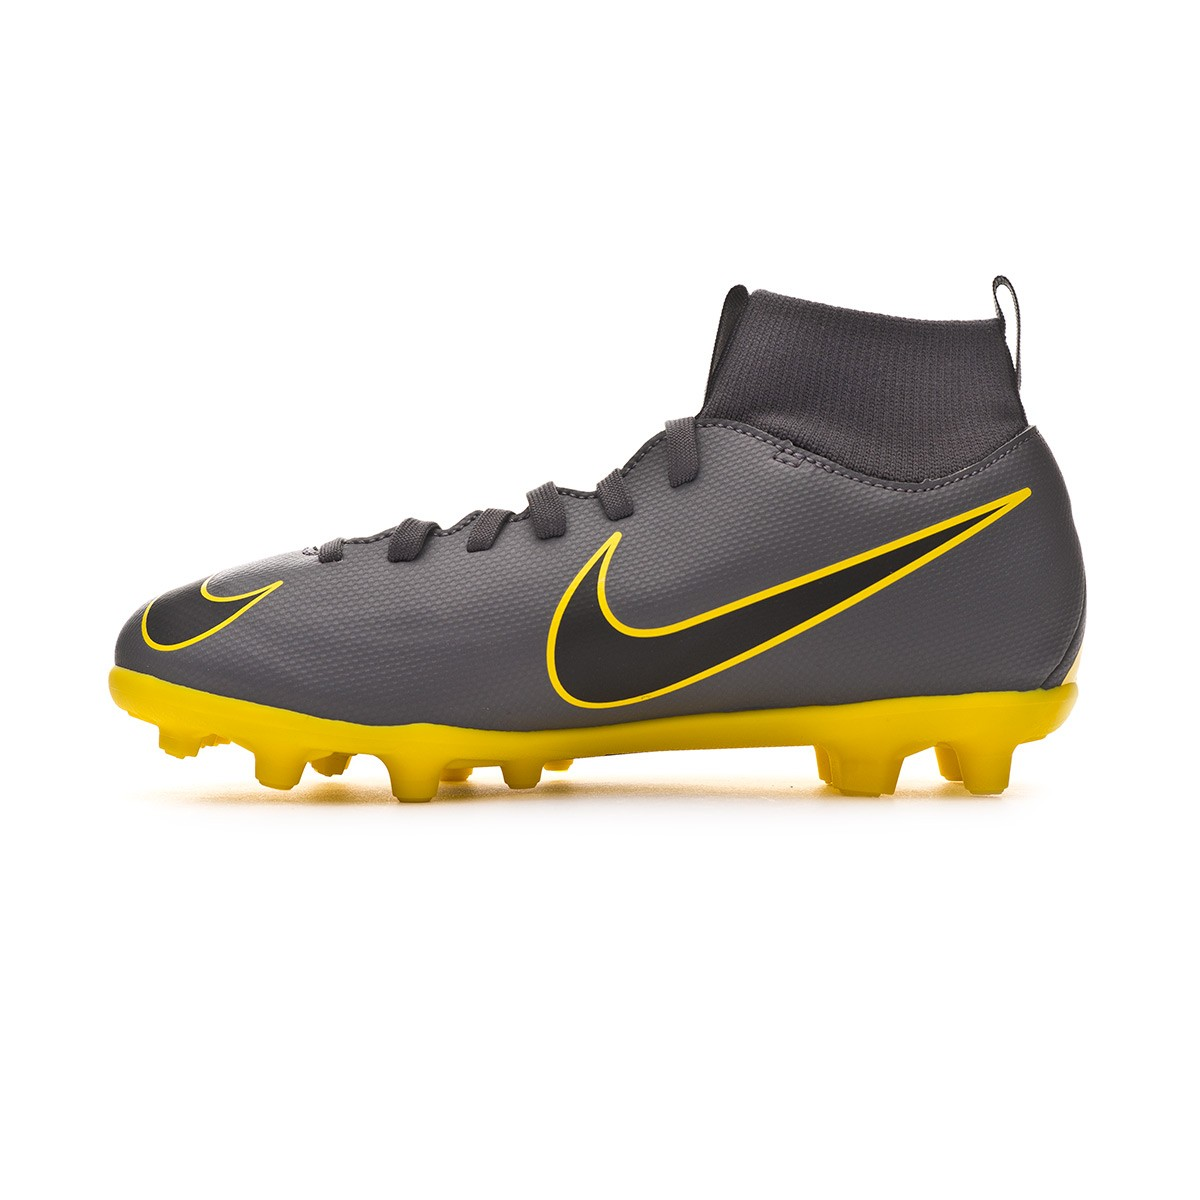 e1f5491727d Zapatos de fútbol Nike Mercurial Superfly VI Club MG Niño Dark  grey-Black-Optical yellow - Tienda de fútbol Fútbol Emotion